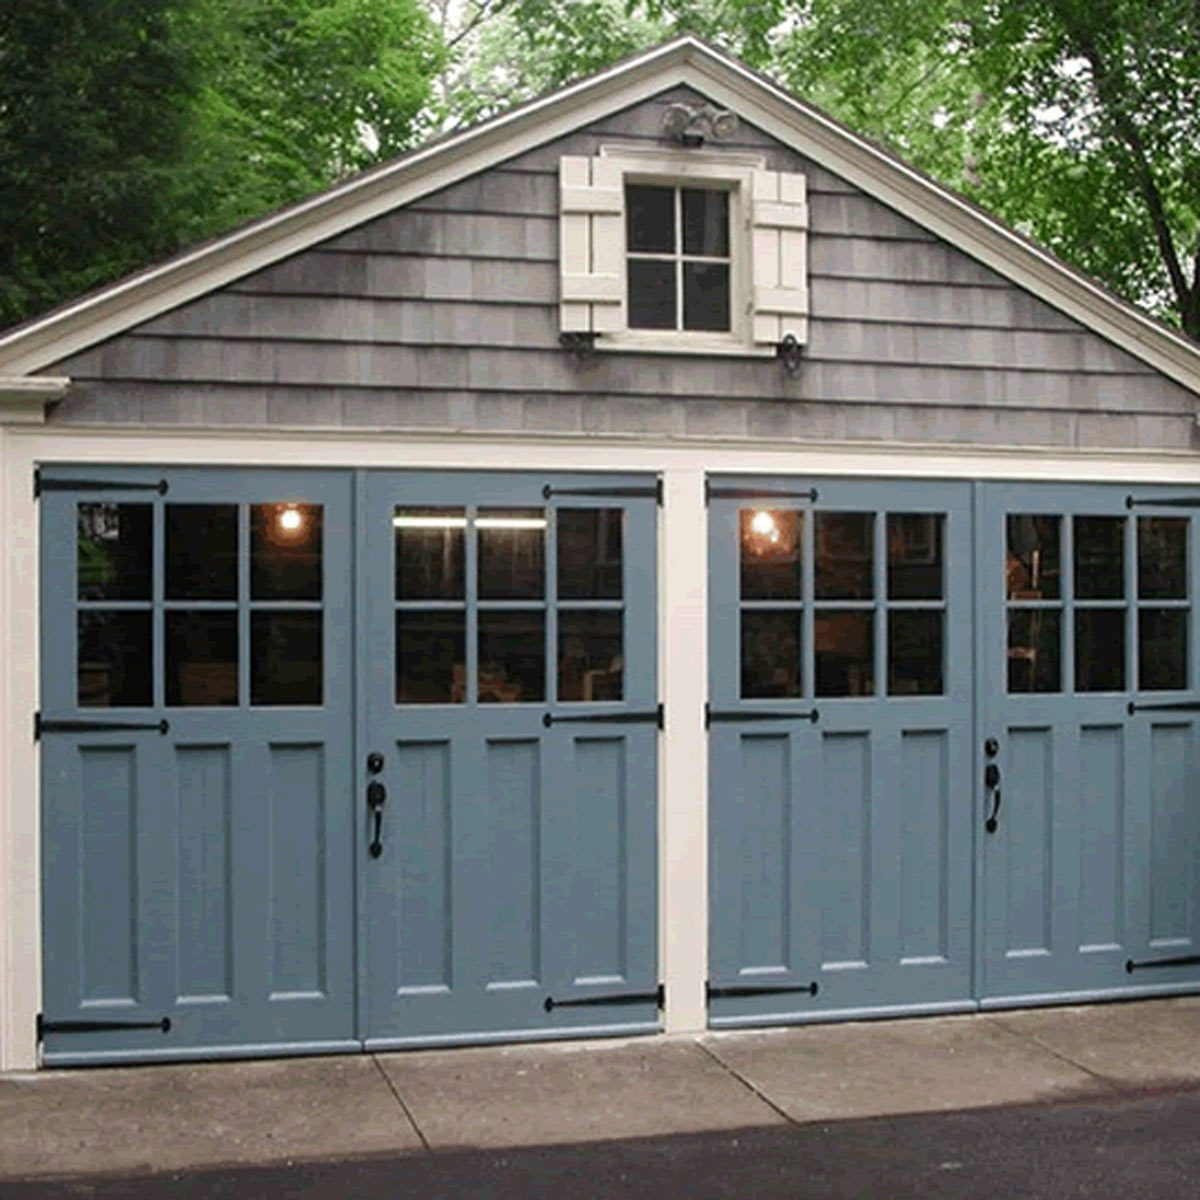 15 House Painting Ideas That Improve Curb Appeal — The ... on Garage Door Paint Ideas  id=89893